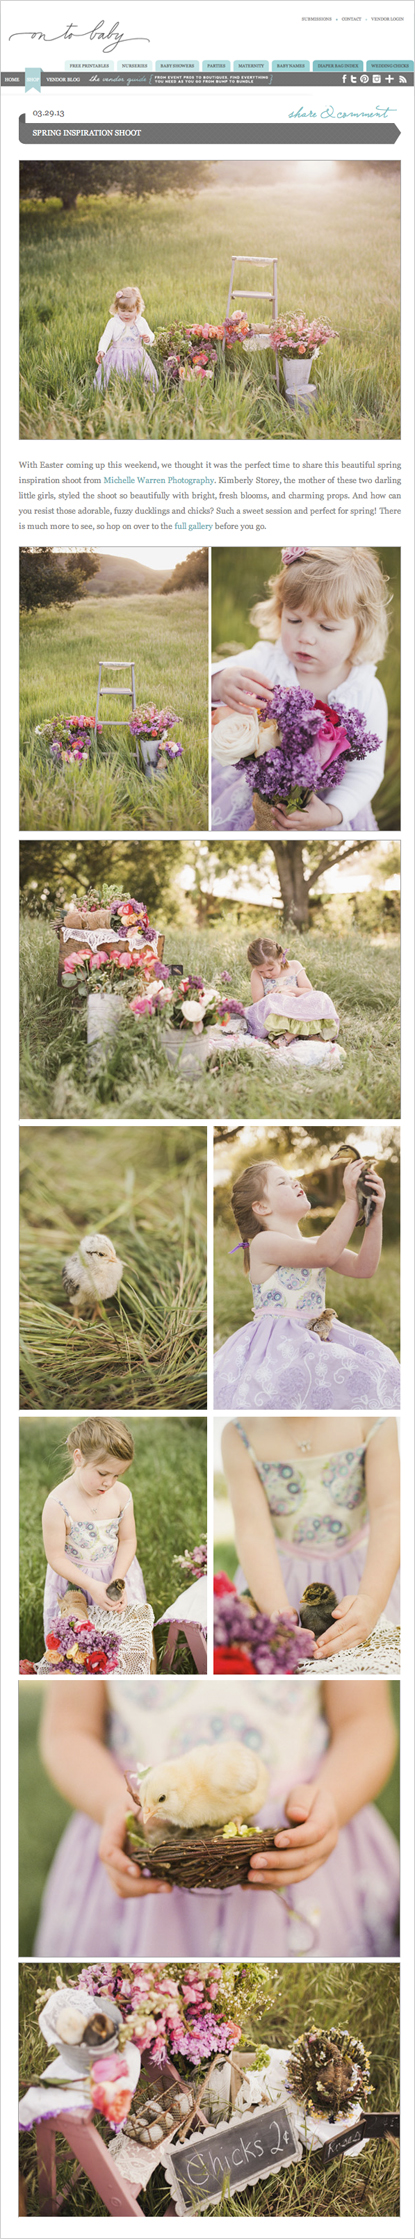 Santa Ynez Kids Photography - Easter Photos - On To Baby